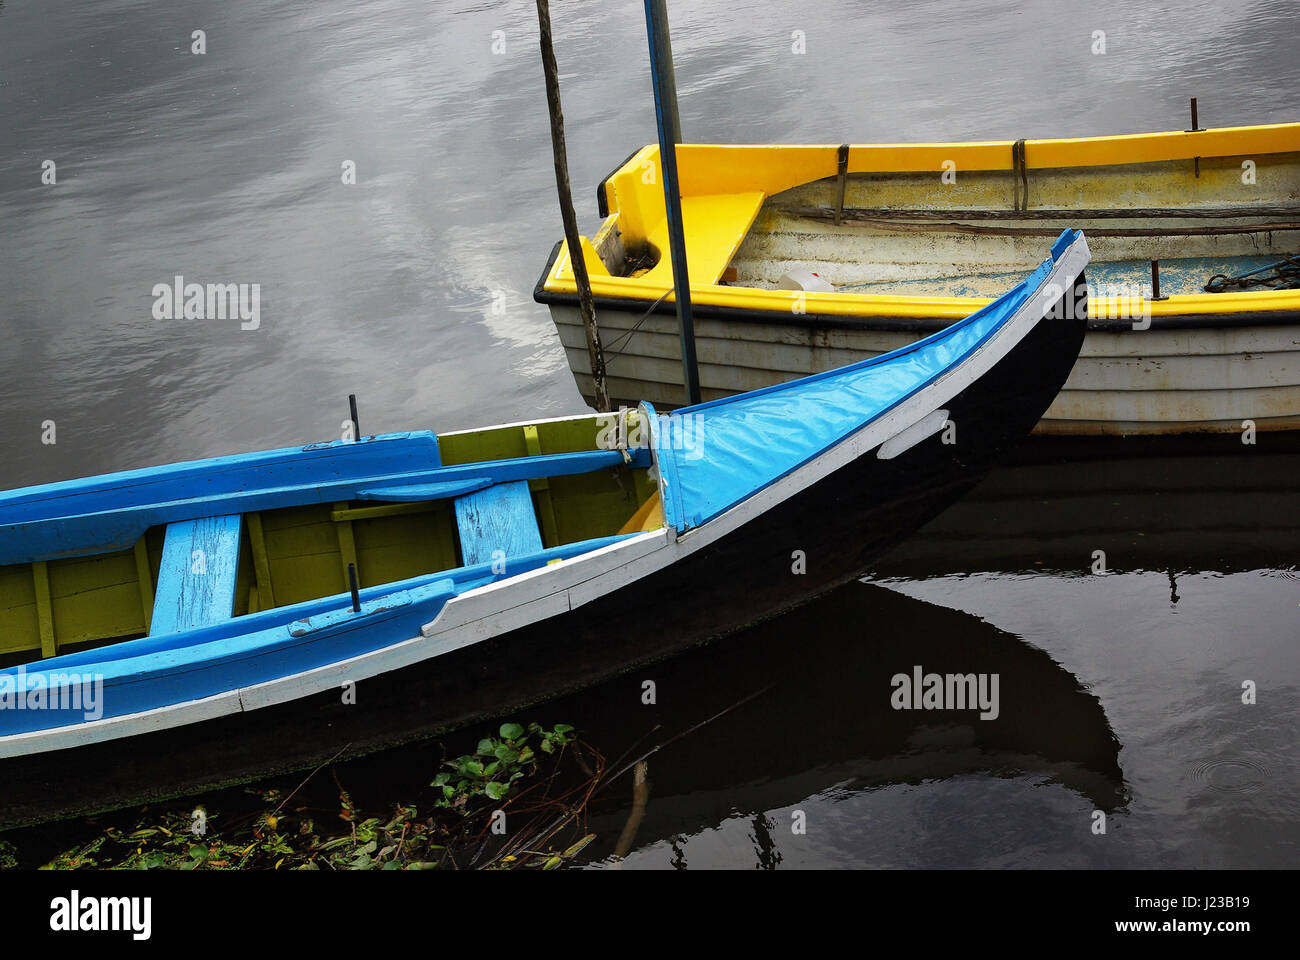 Two Portuguese blue and yellow row boats anchored in a calm river shore - Stock Image